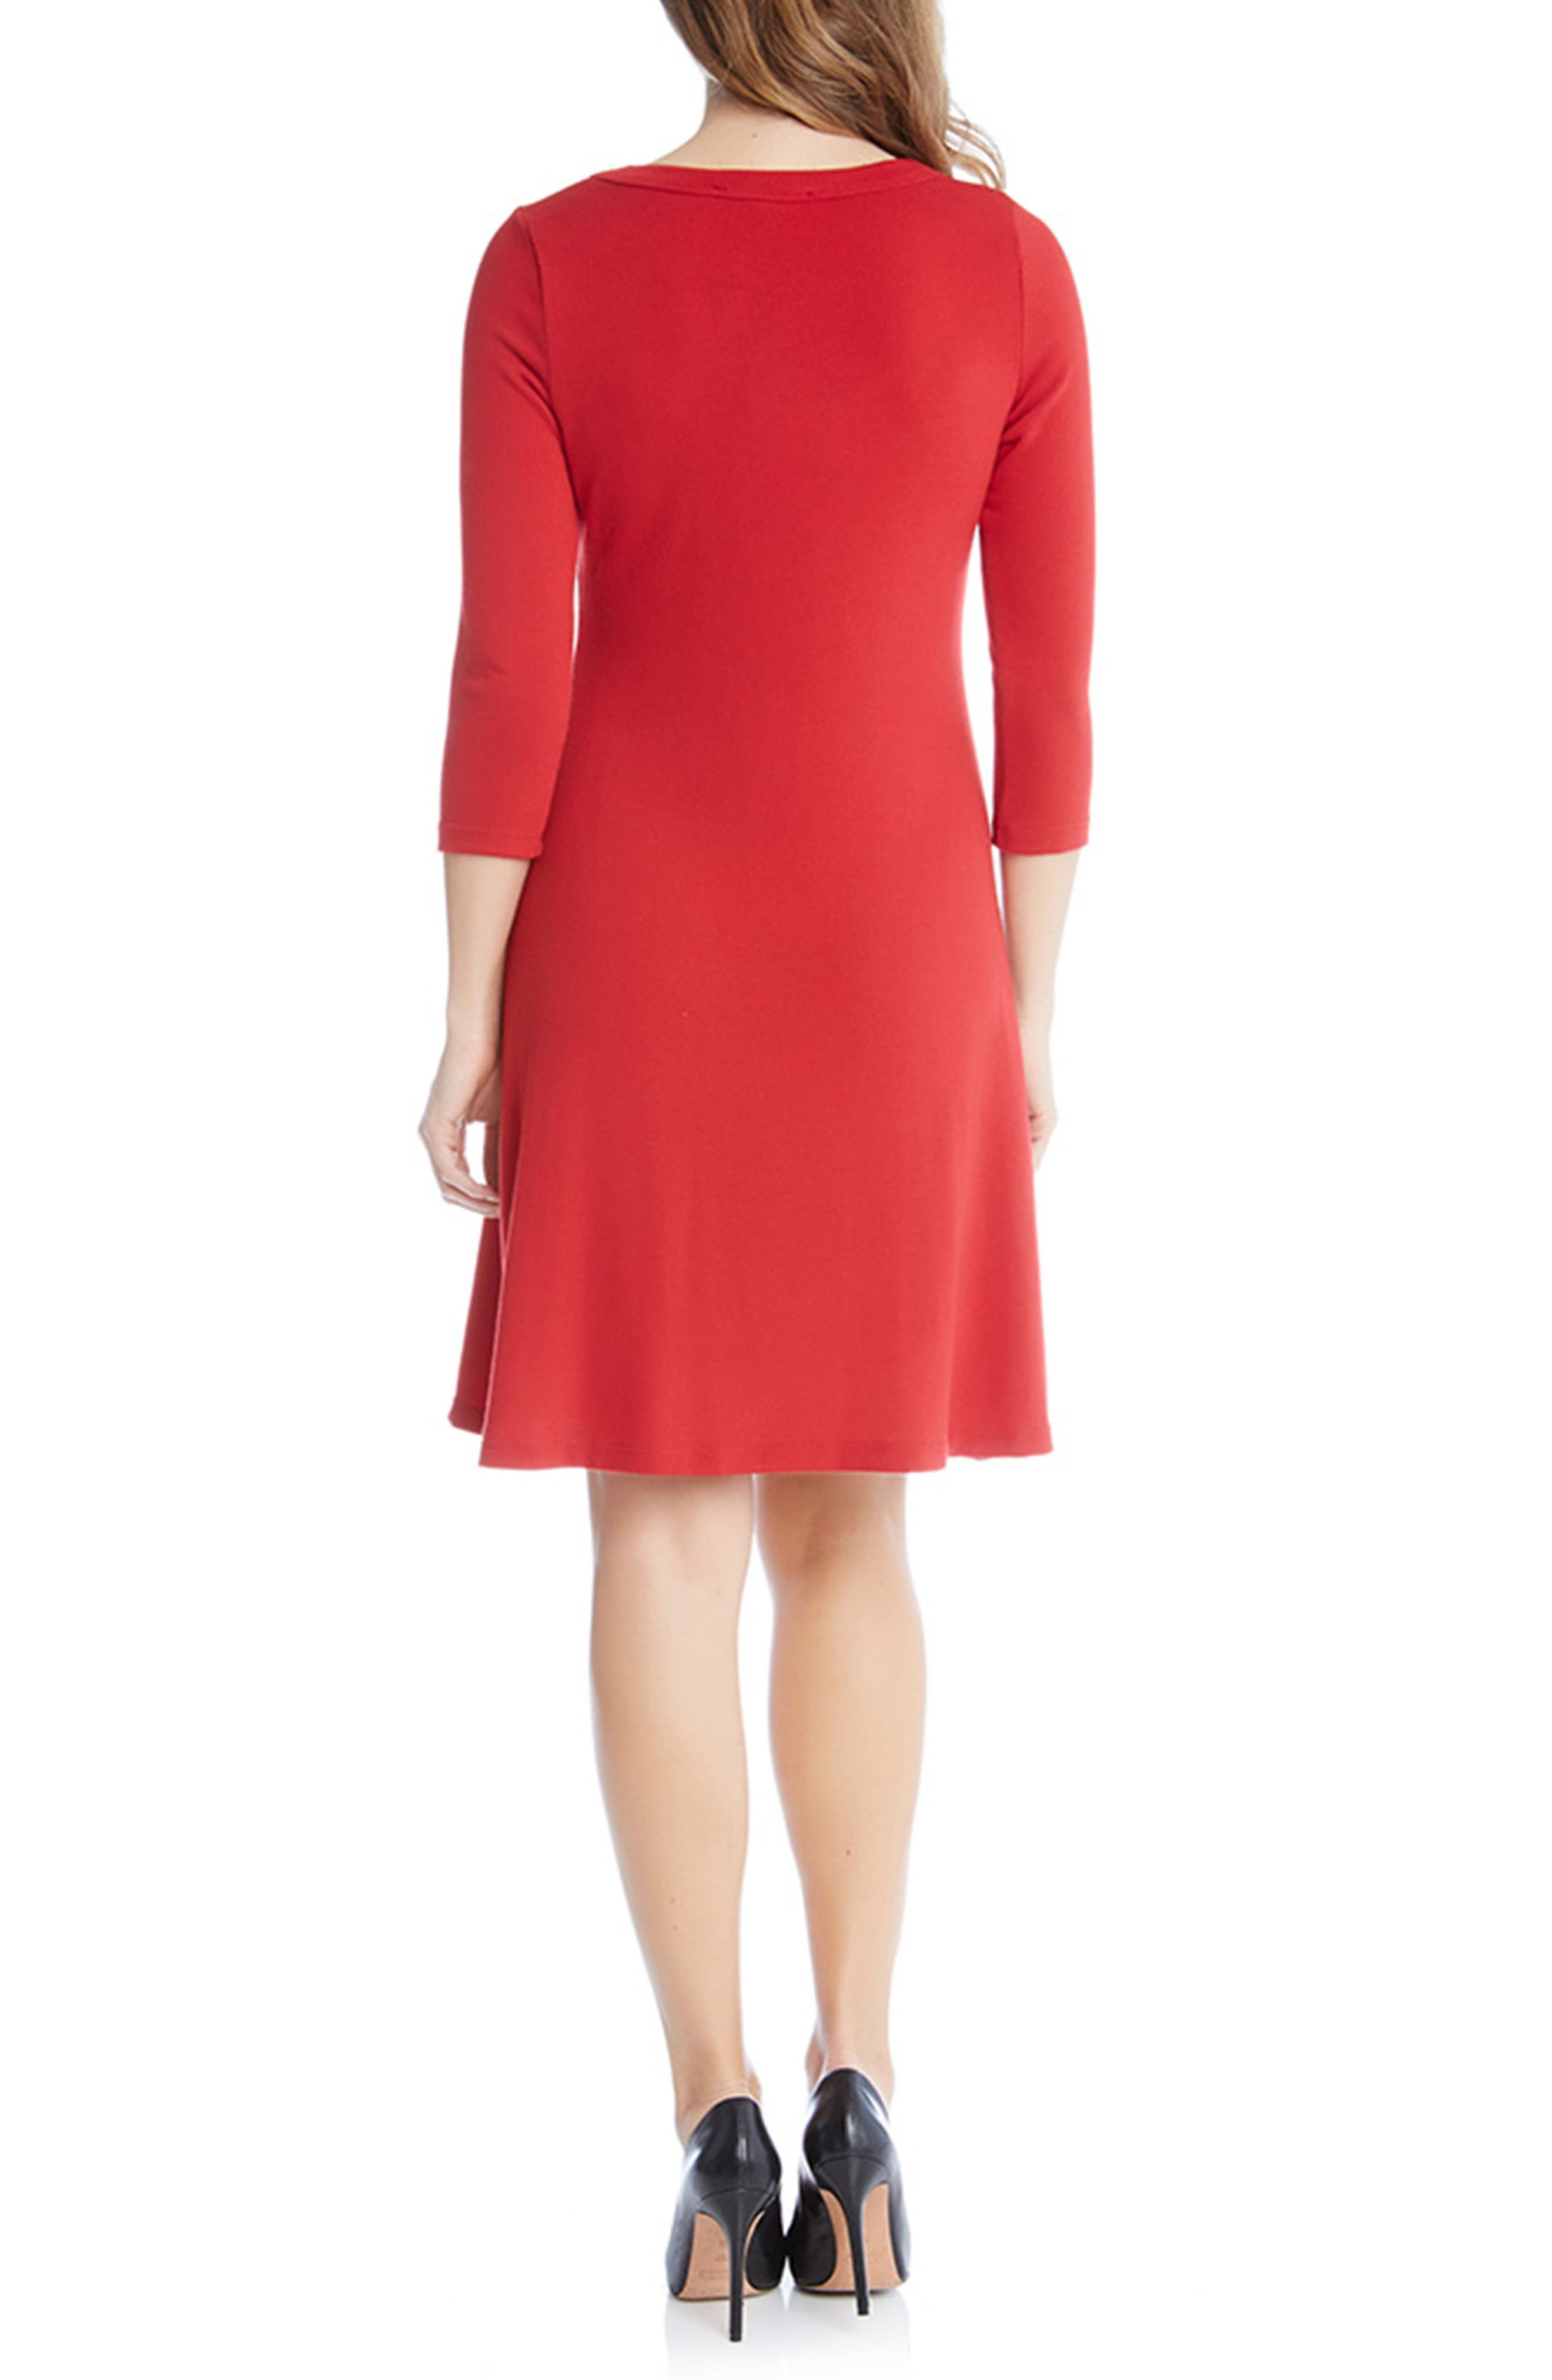 A-Line Sweater Dress,                             Alternate thumbnail 2, color,                             Red